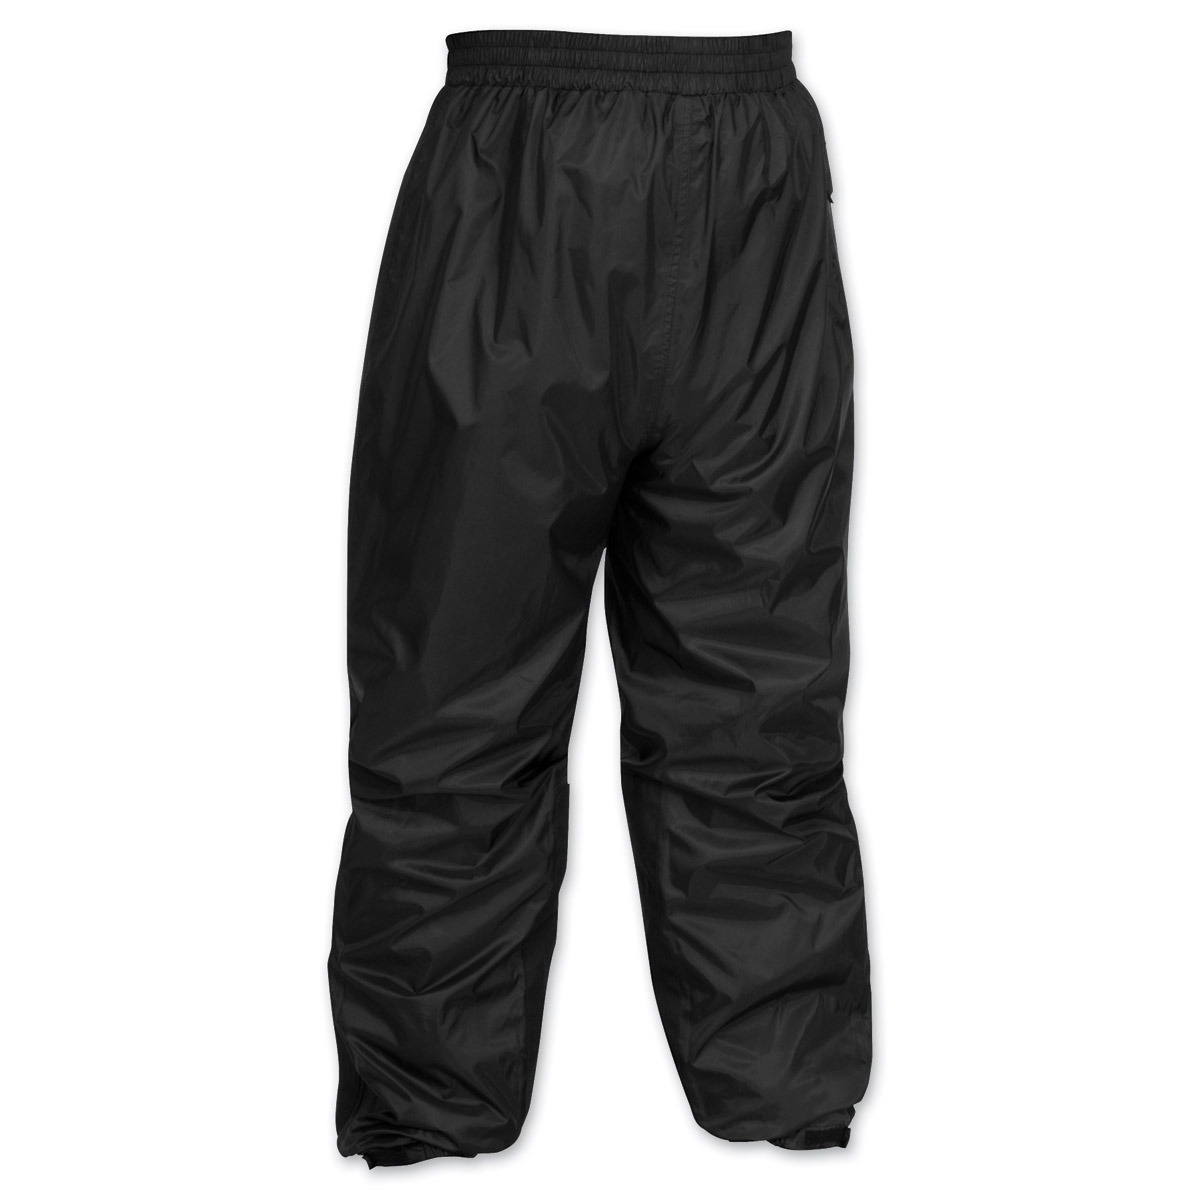 Firstgear Rainman Black Rain Pants